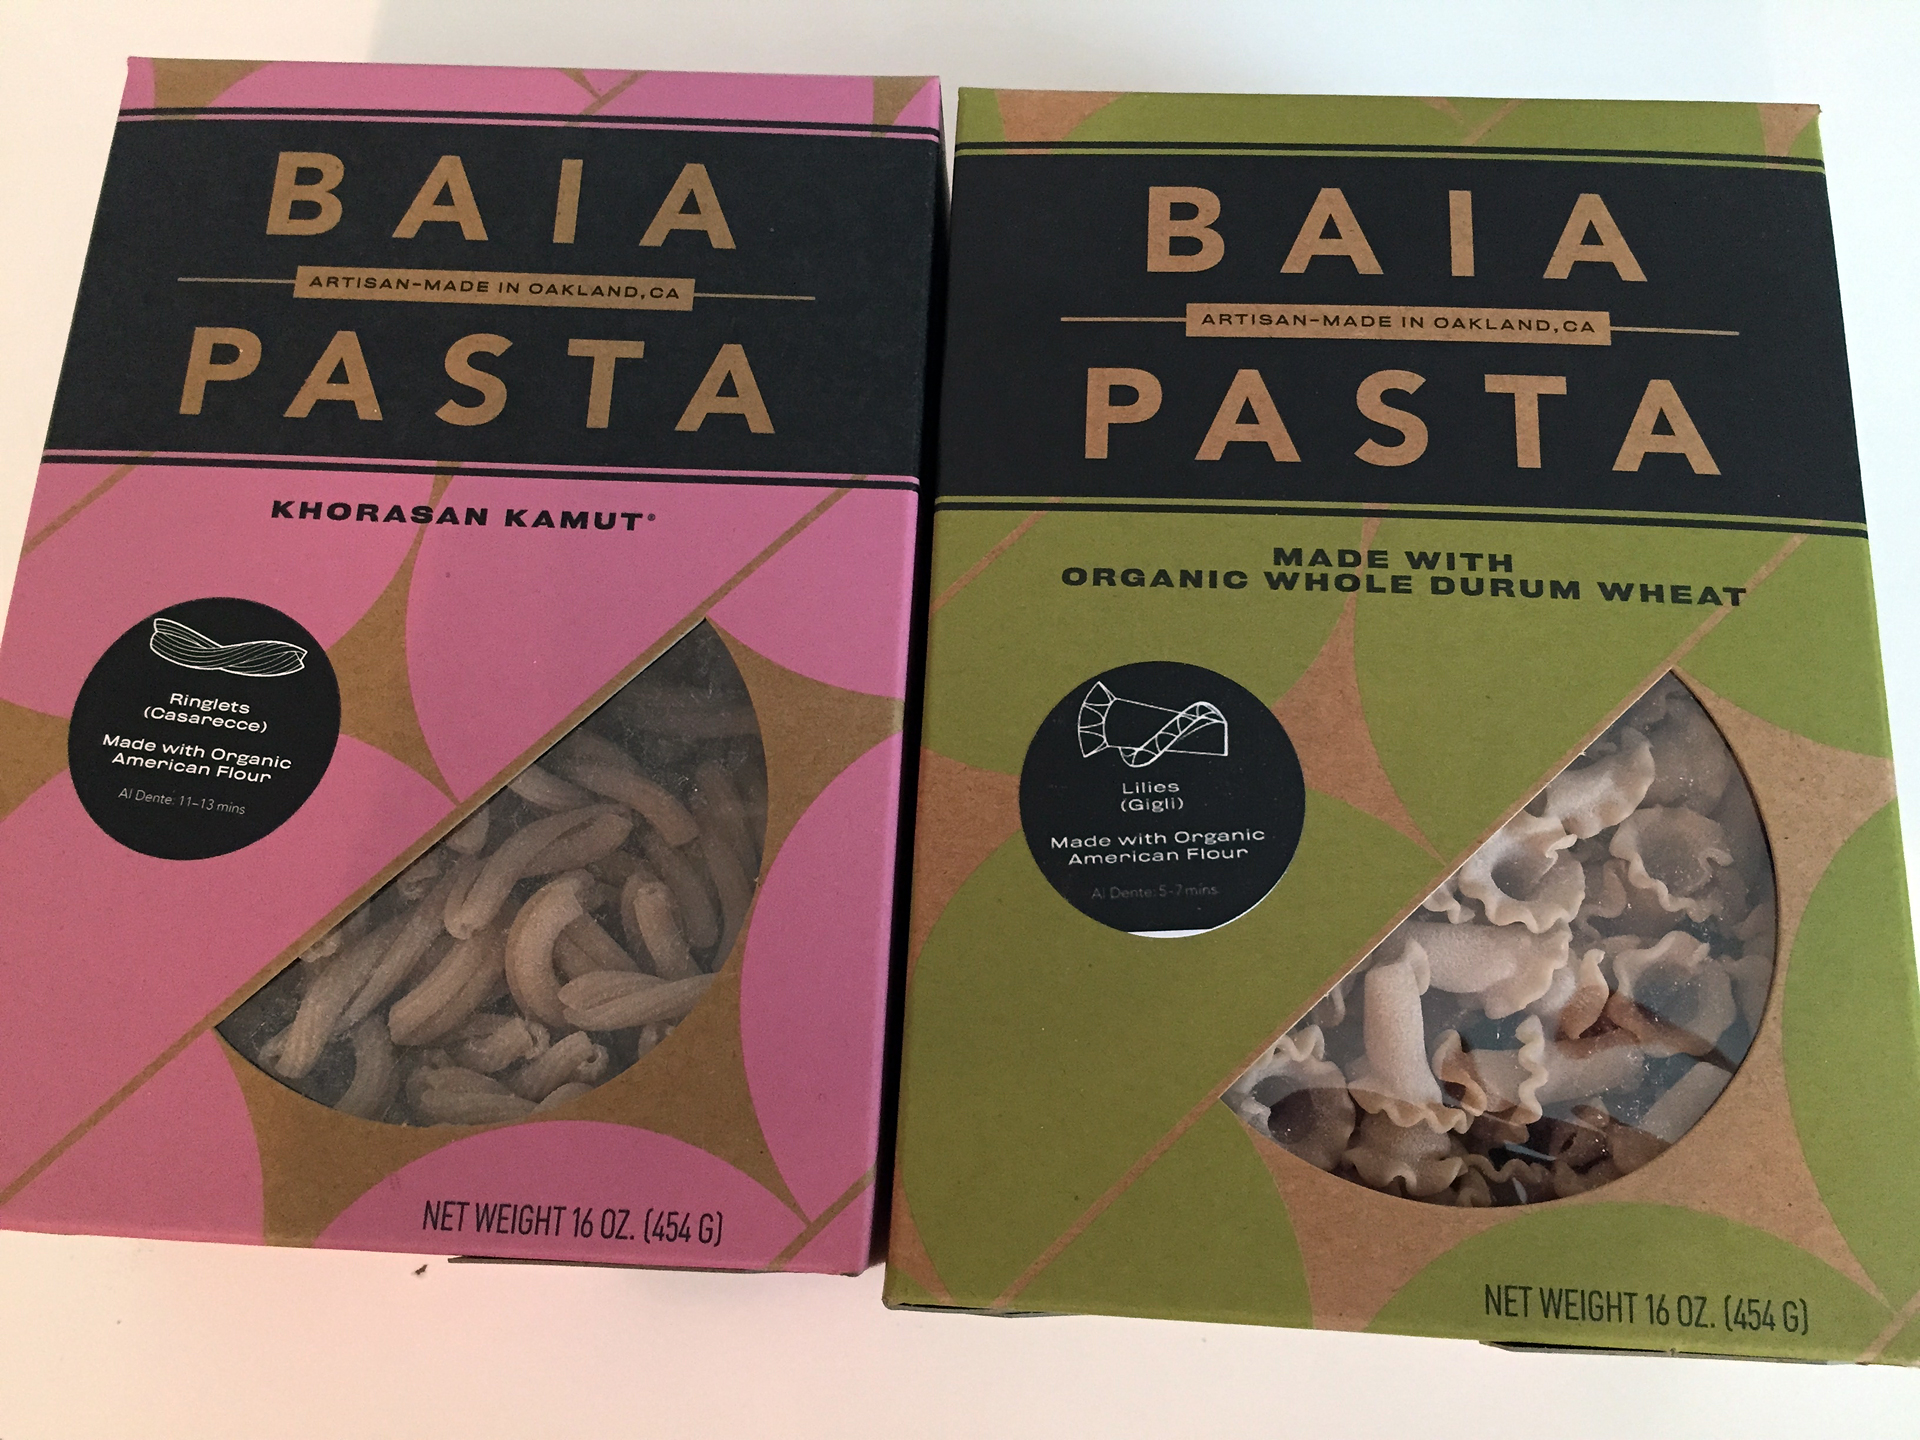 Baia Pasta comes in varieties like kamut and spelt, in addition to whole wheat.